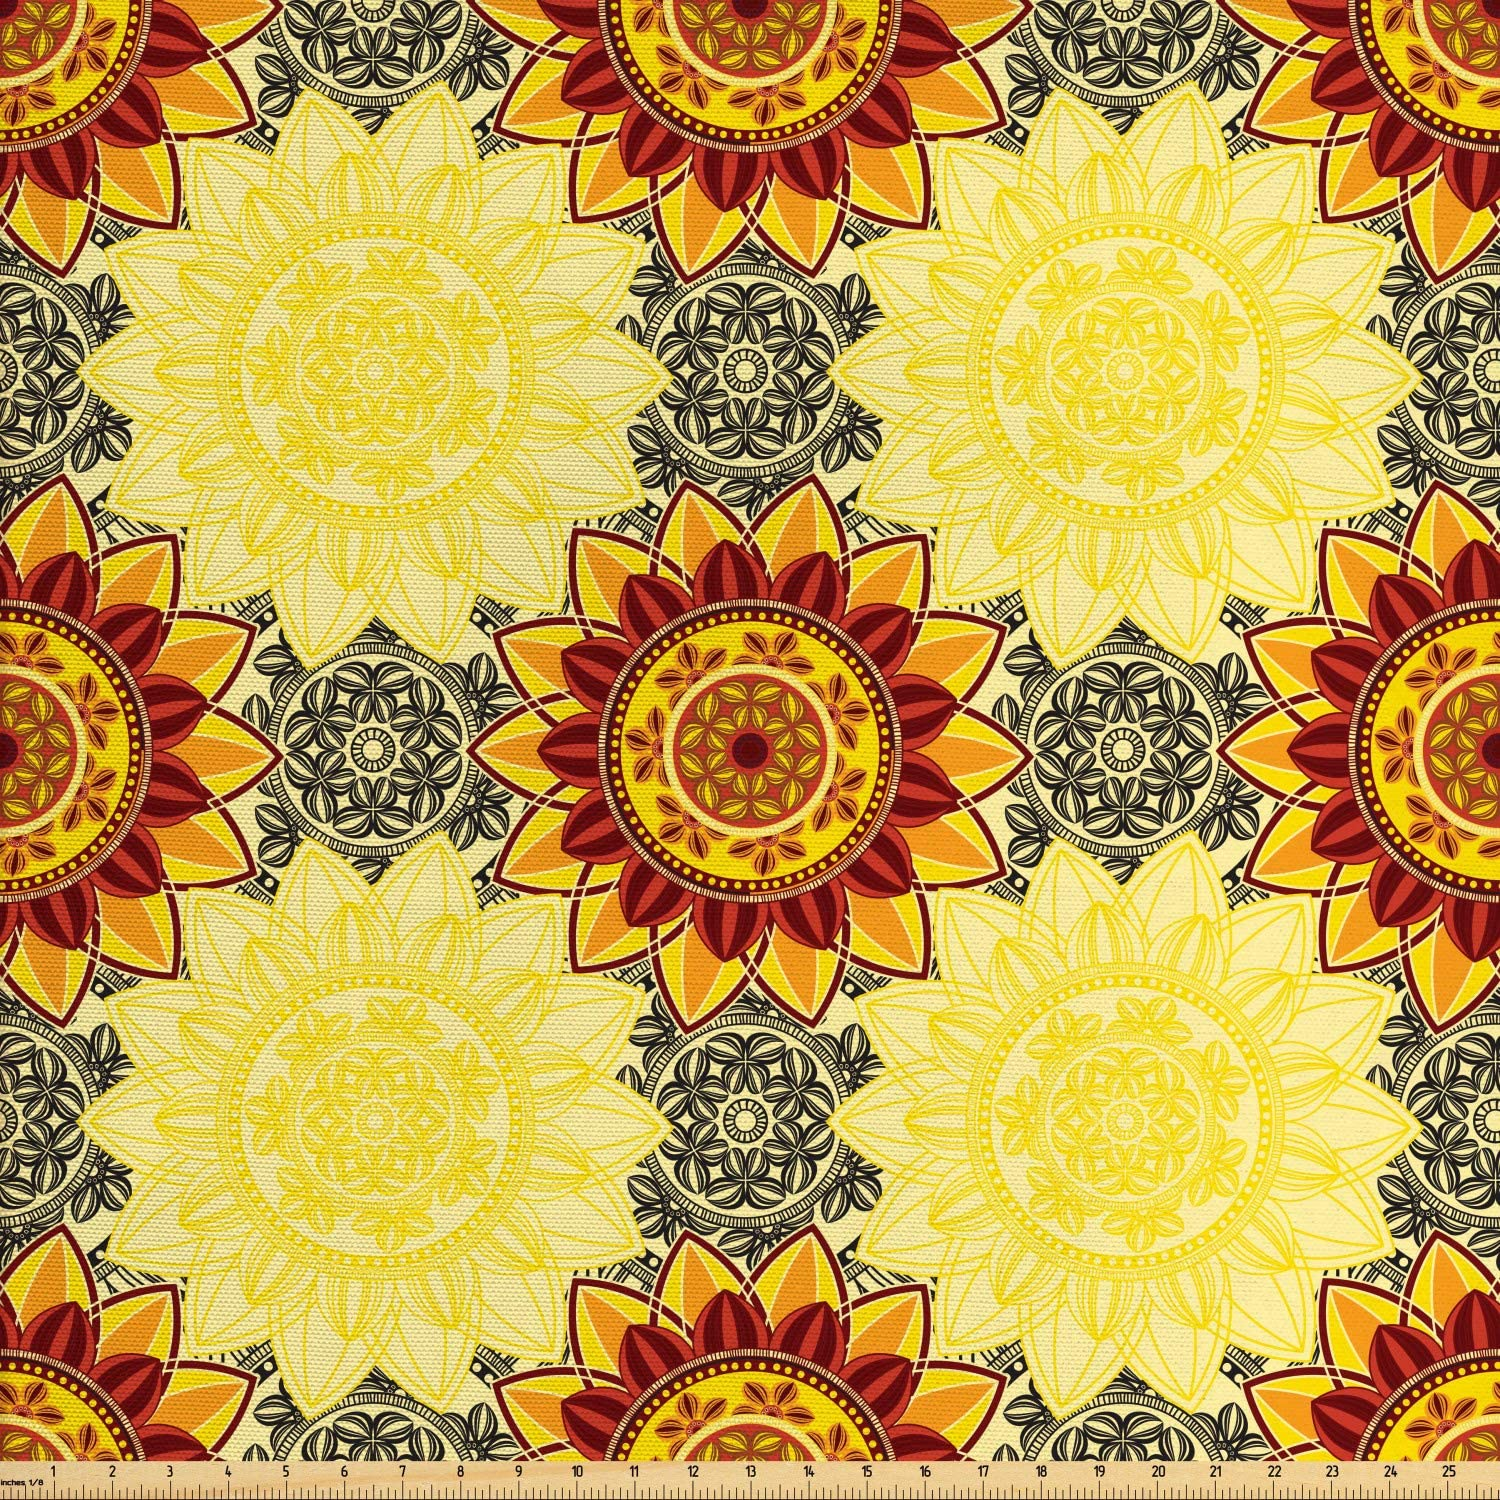 Lunarable Yellow Mandala Fabric by The Yard, Bohemian Floral Motifs Framework Colorful Hippie Style Traditional Details, Decorative Fabric for Upholstery and Home Accents, 1 Yard, Yellow Burgundy